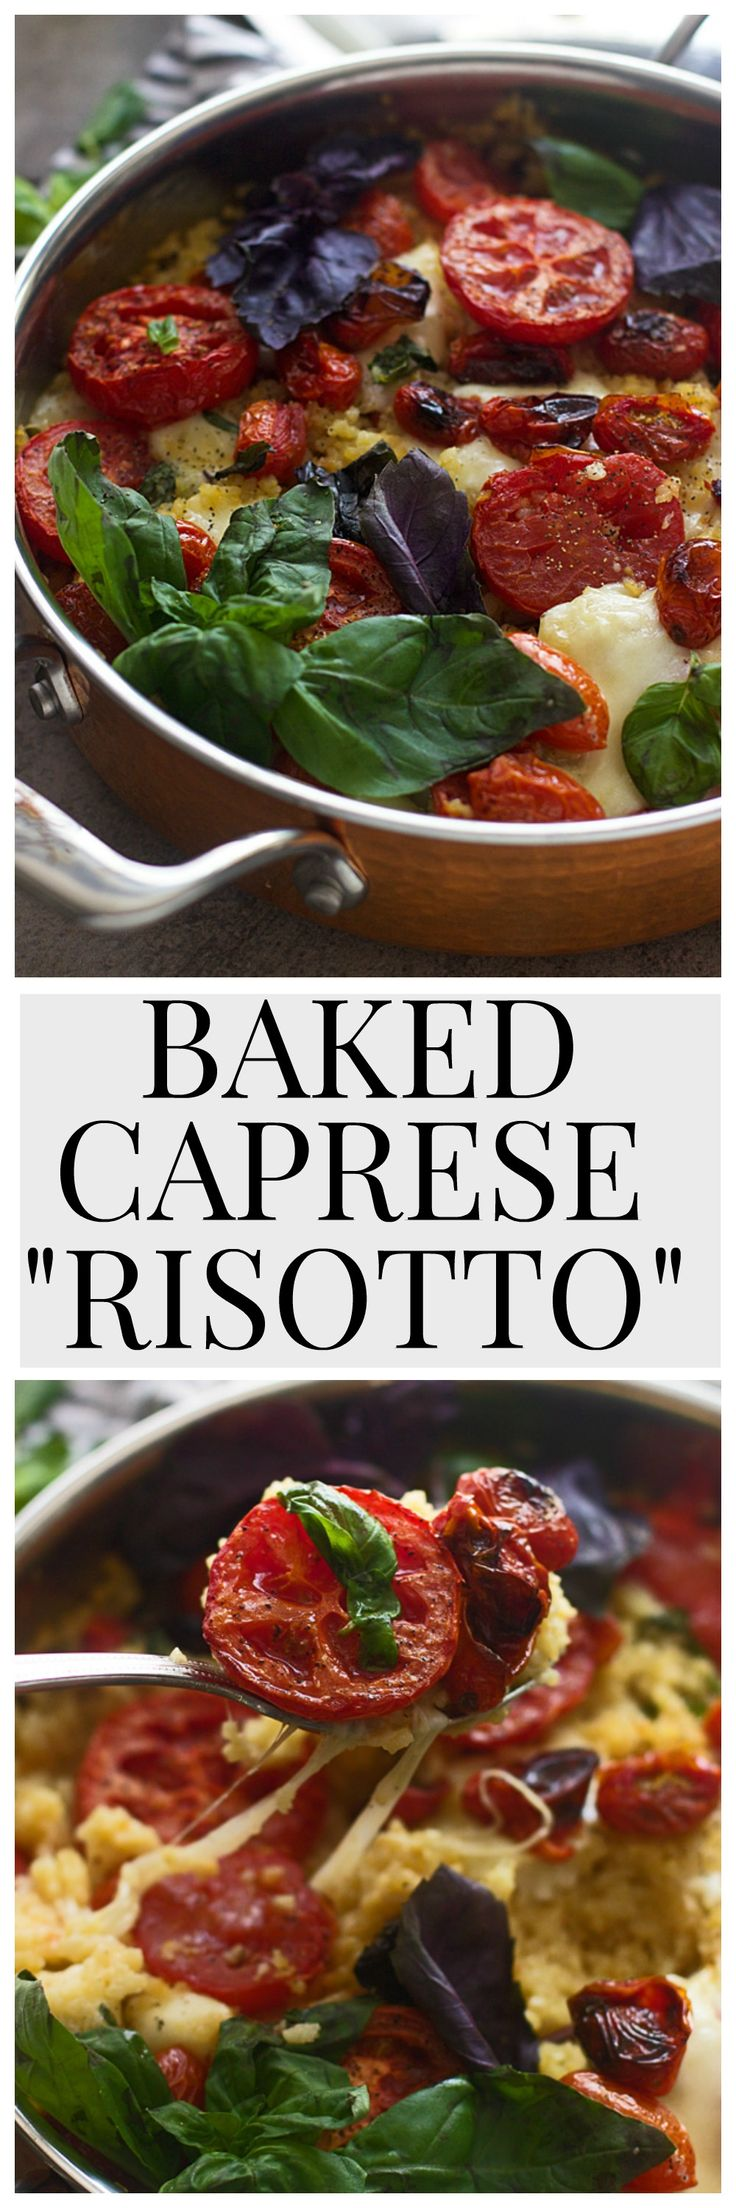 "BAKED CAPRESE ""RISOTTO"" - A cheater risotto that takes virtually no..."